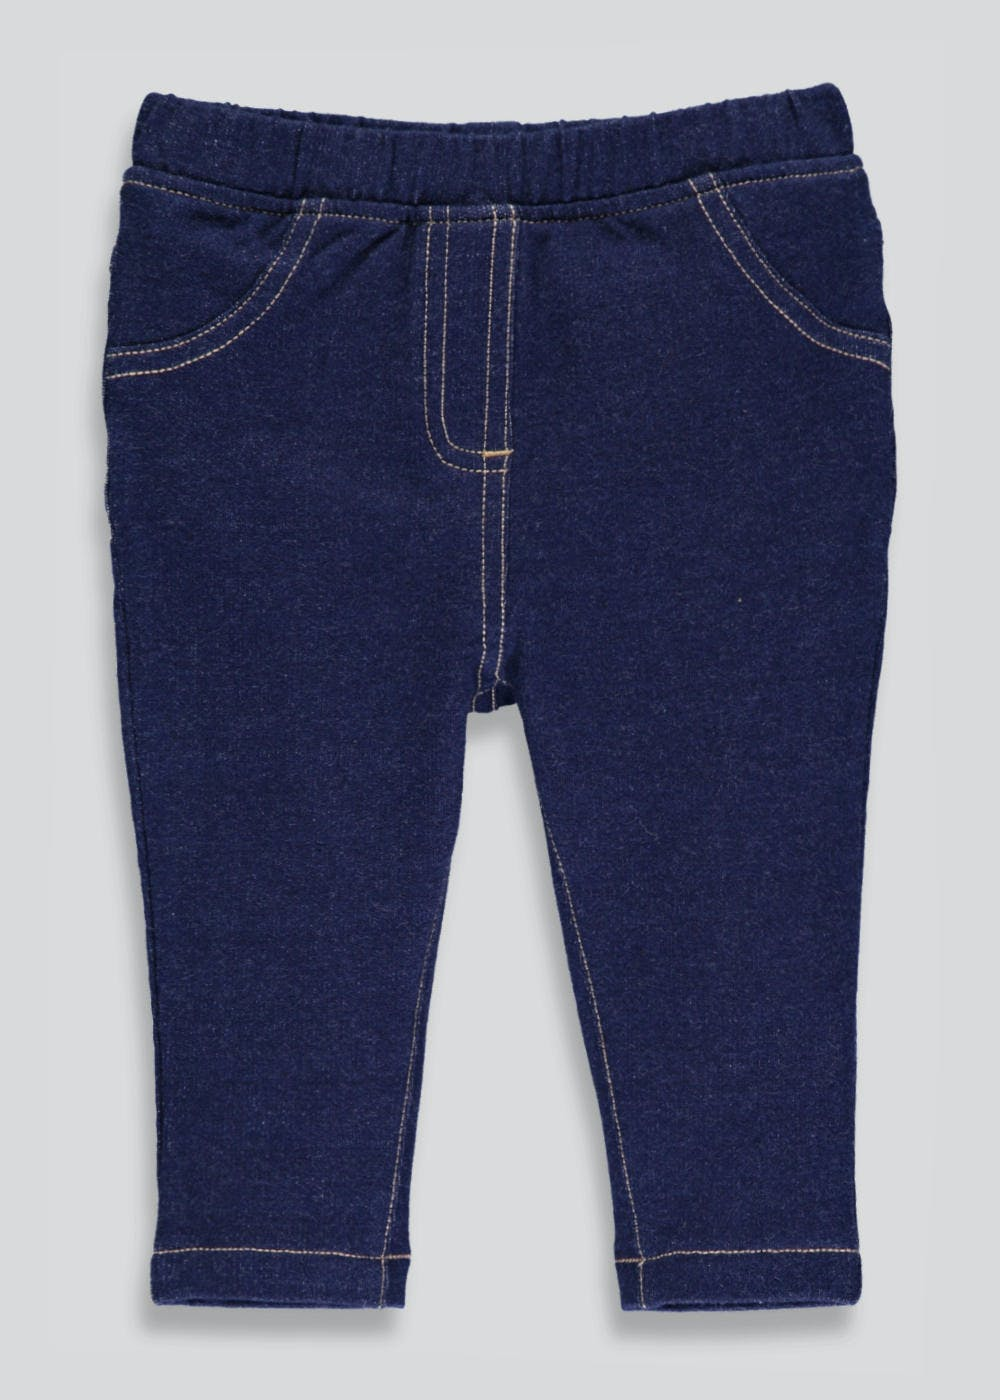 biggest discount new release purchase original Unisex Denim Jeggings (Tiny Baby-18mths)